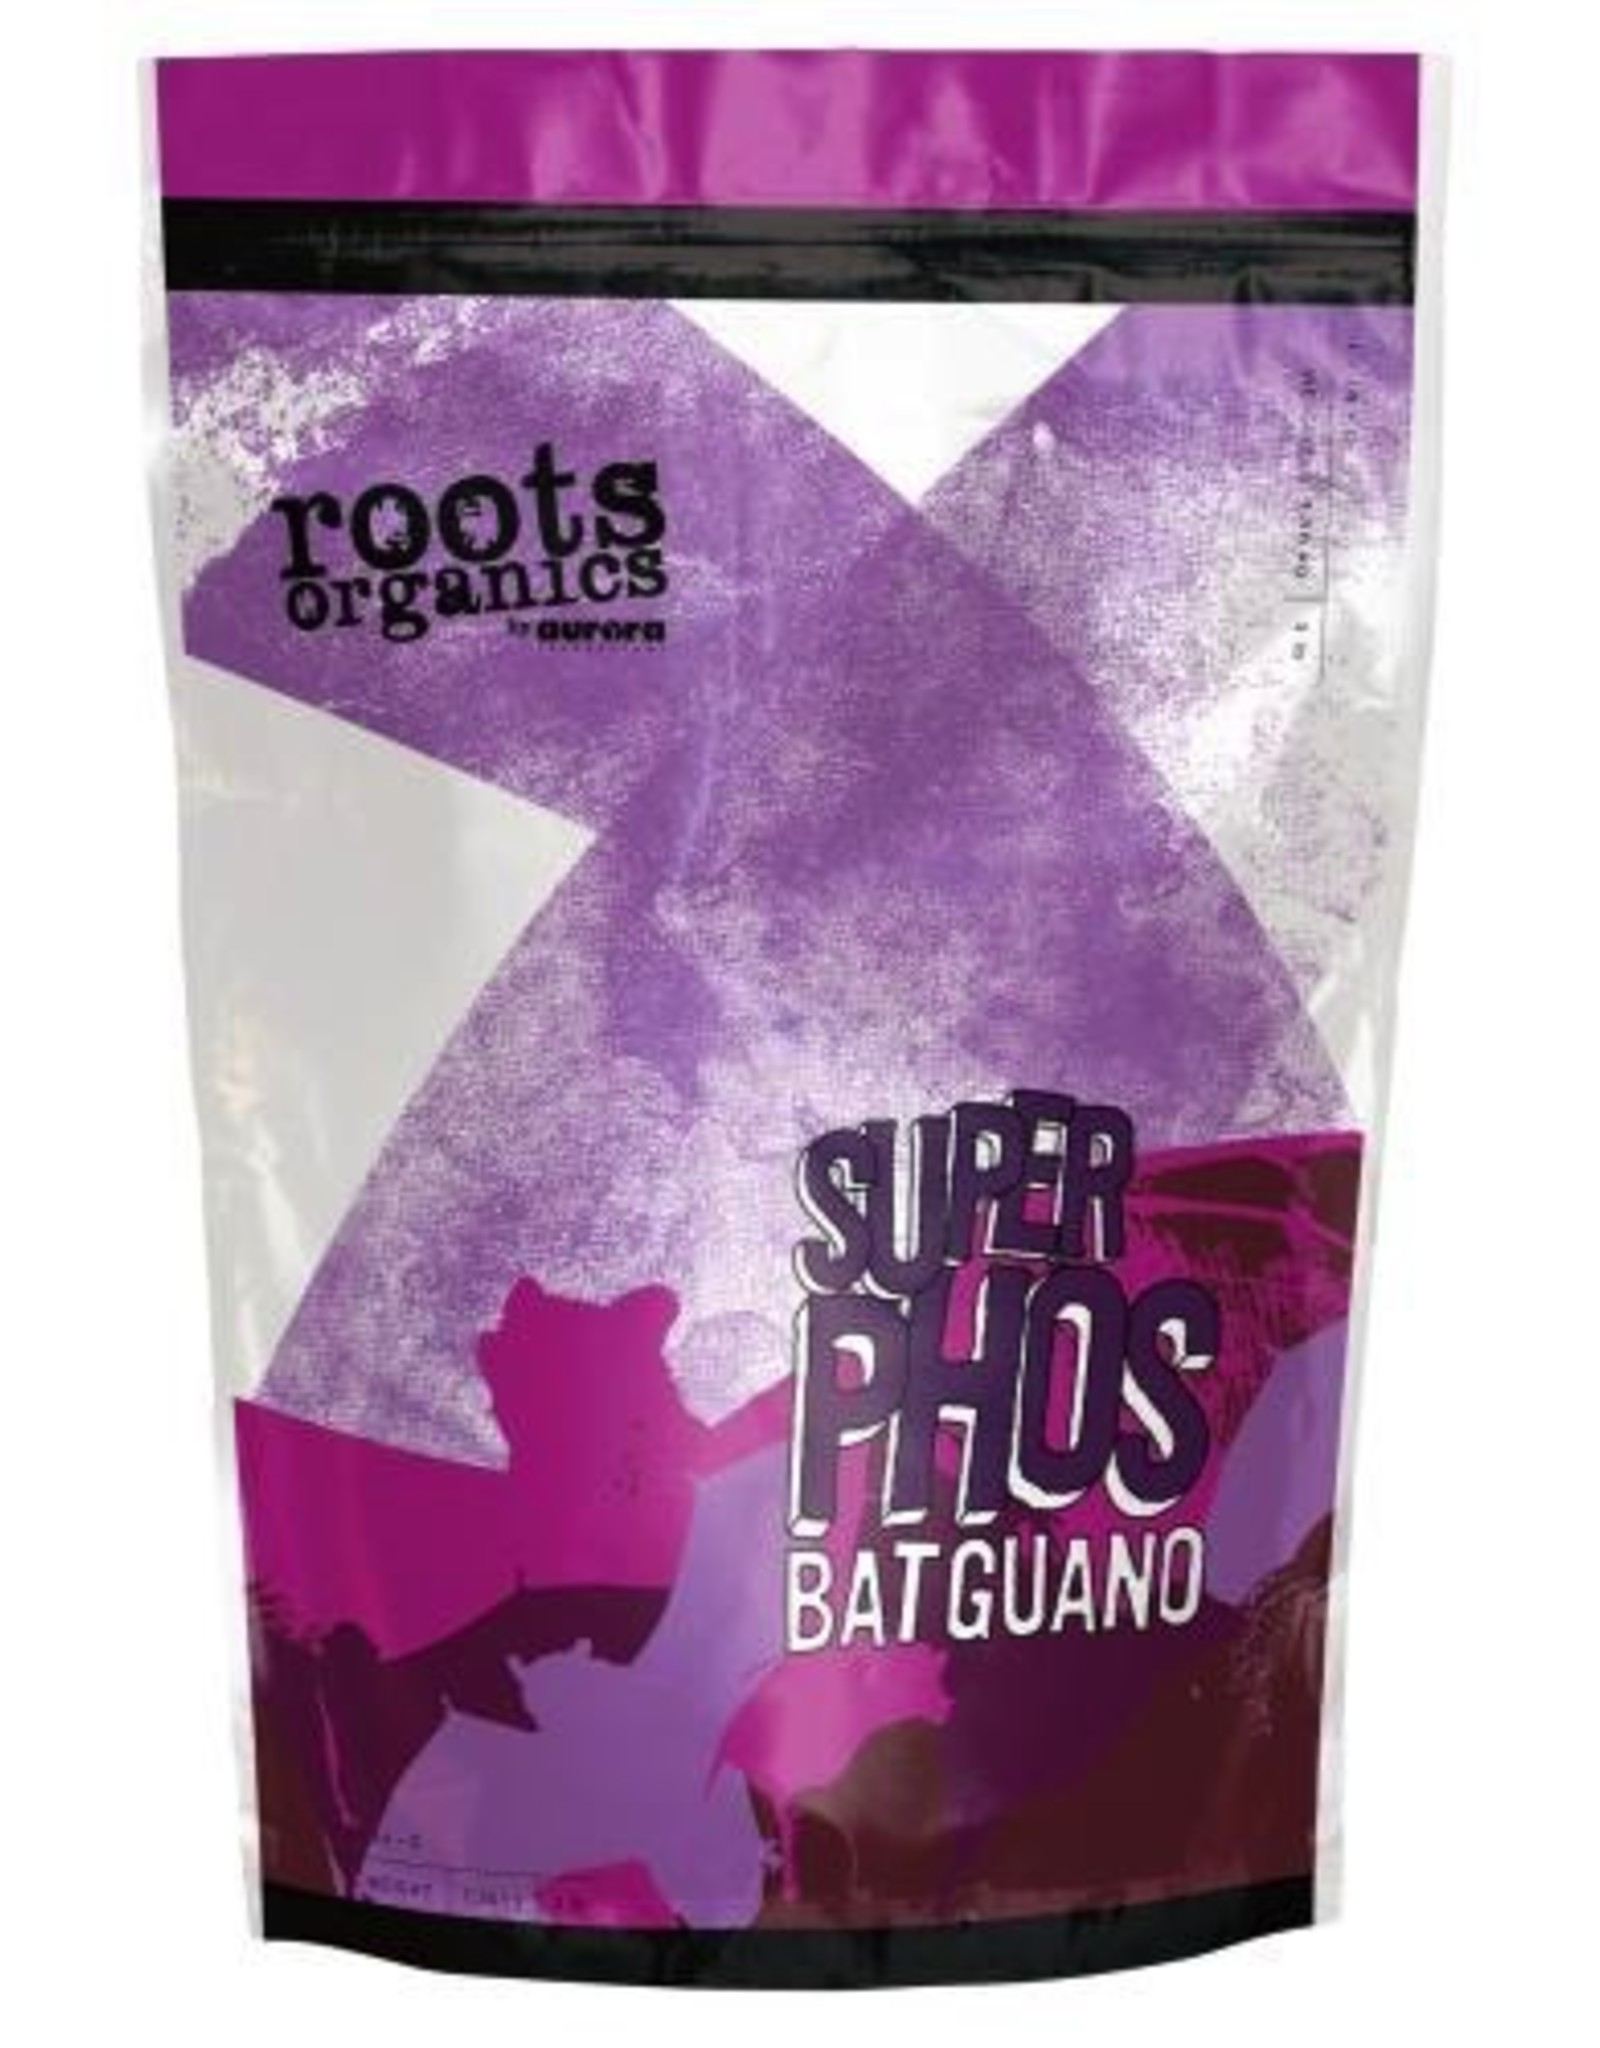 AURORA INNOVATIONS Roots Organics Super Phos Bat Guano 3 lb